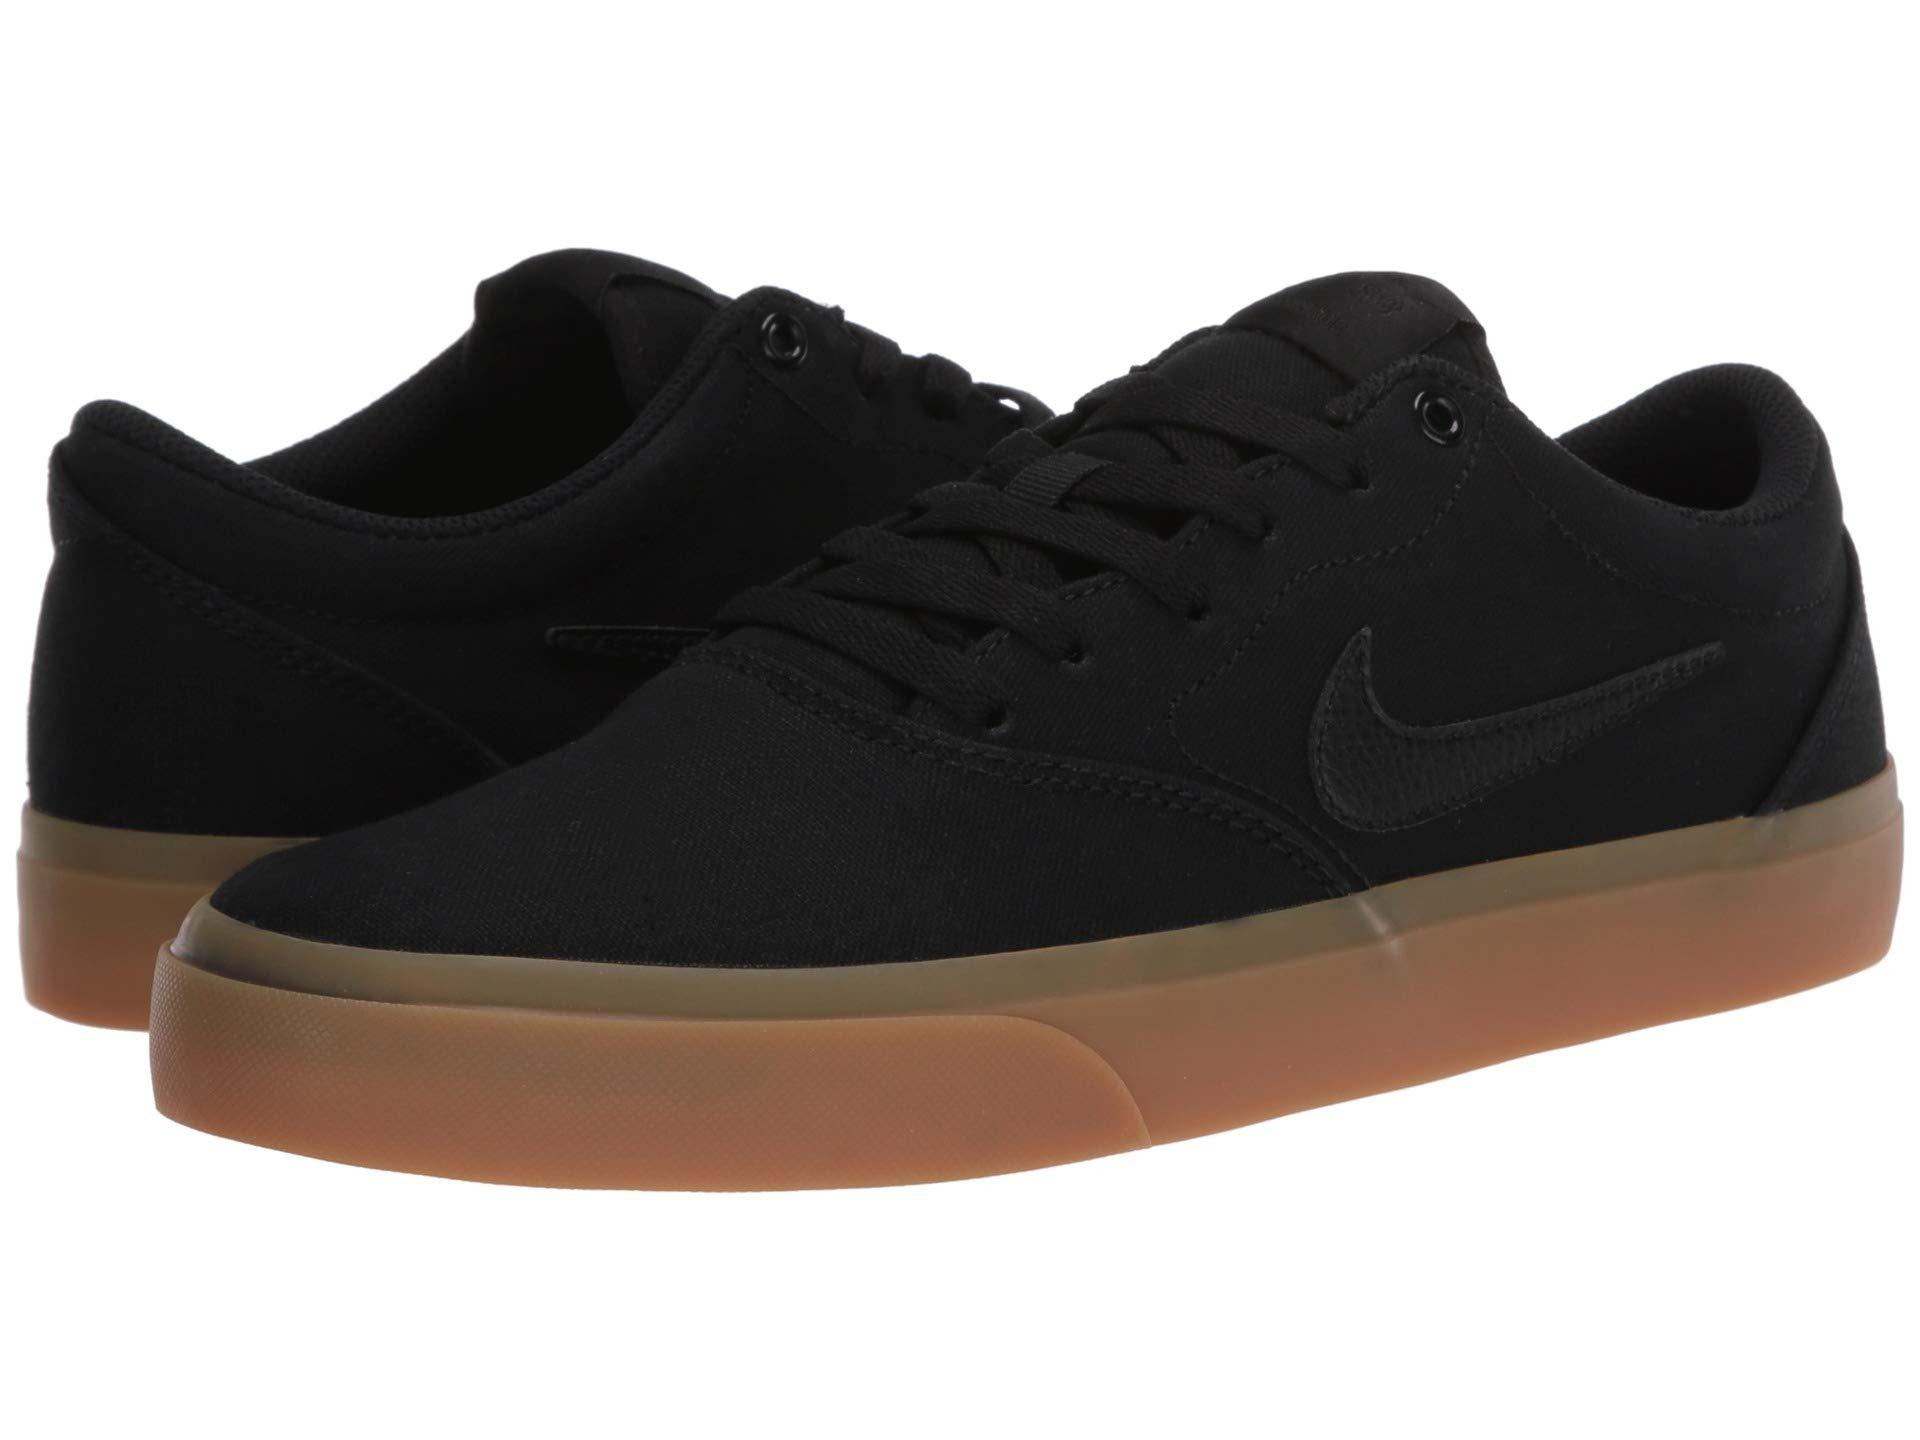 Nike Canvas SB Charge Skate Shoes in Black for Men - Lyst